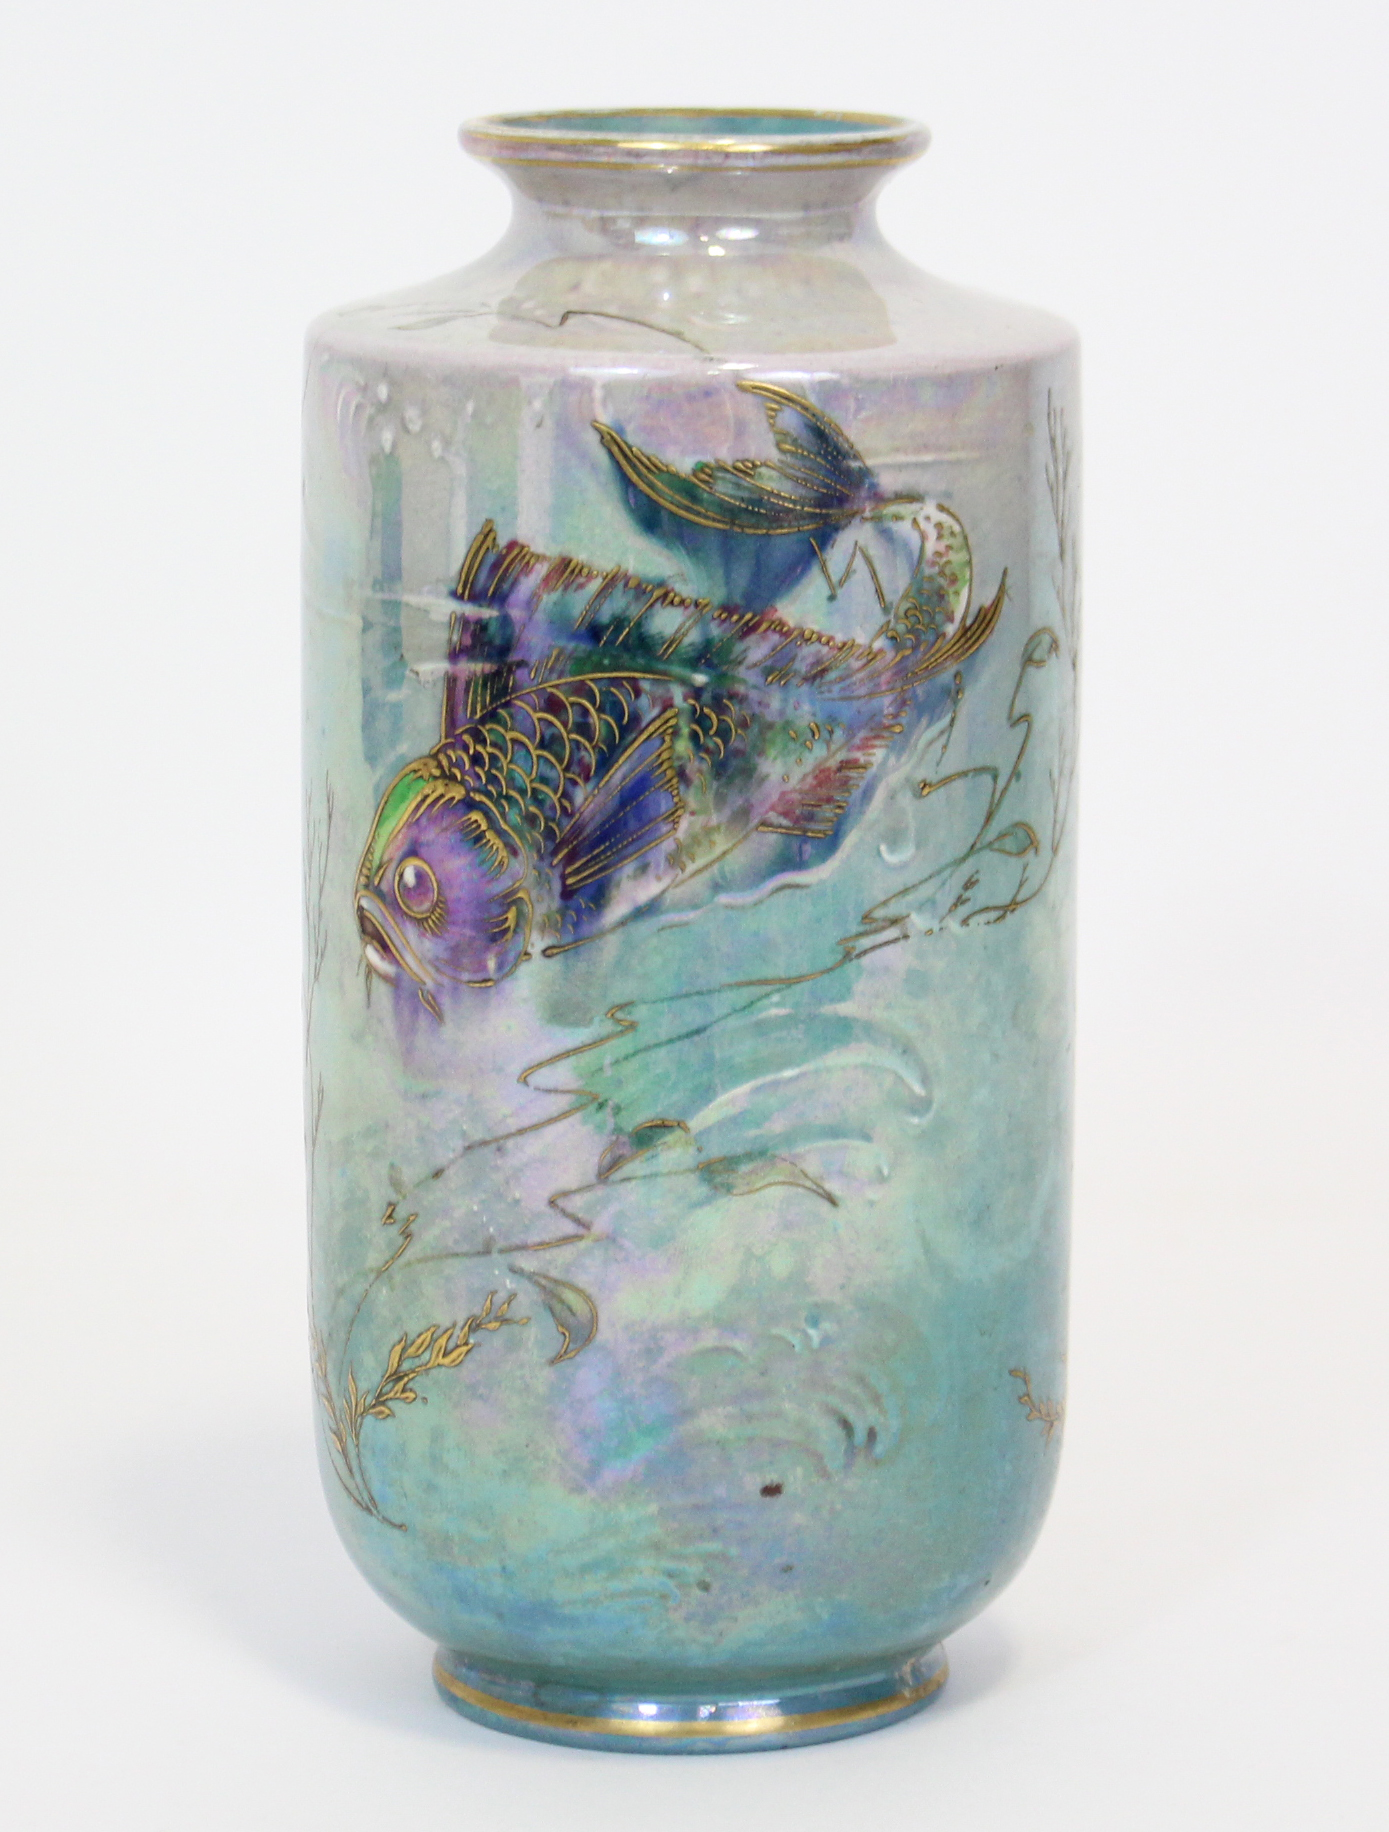 Lot 162 - A Shelley lustre-ware vase by Walter Slater, of cylindrical form with short narrow neck, painted